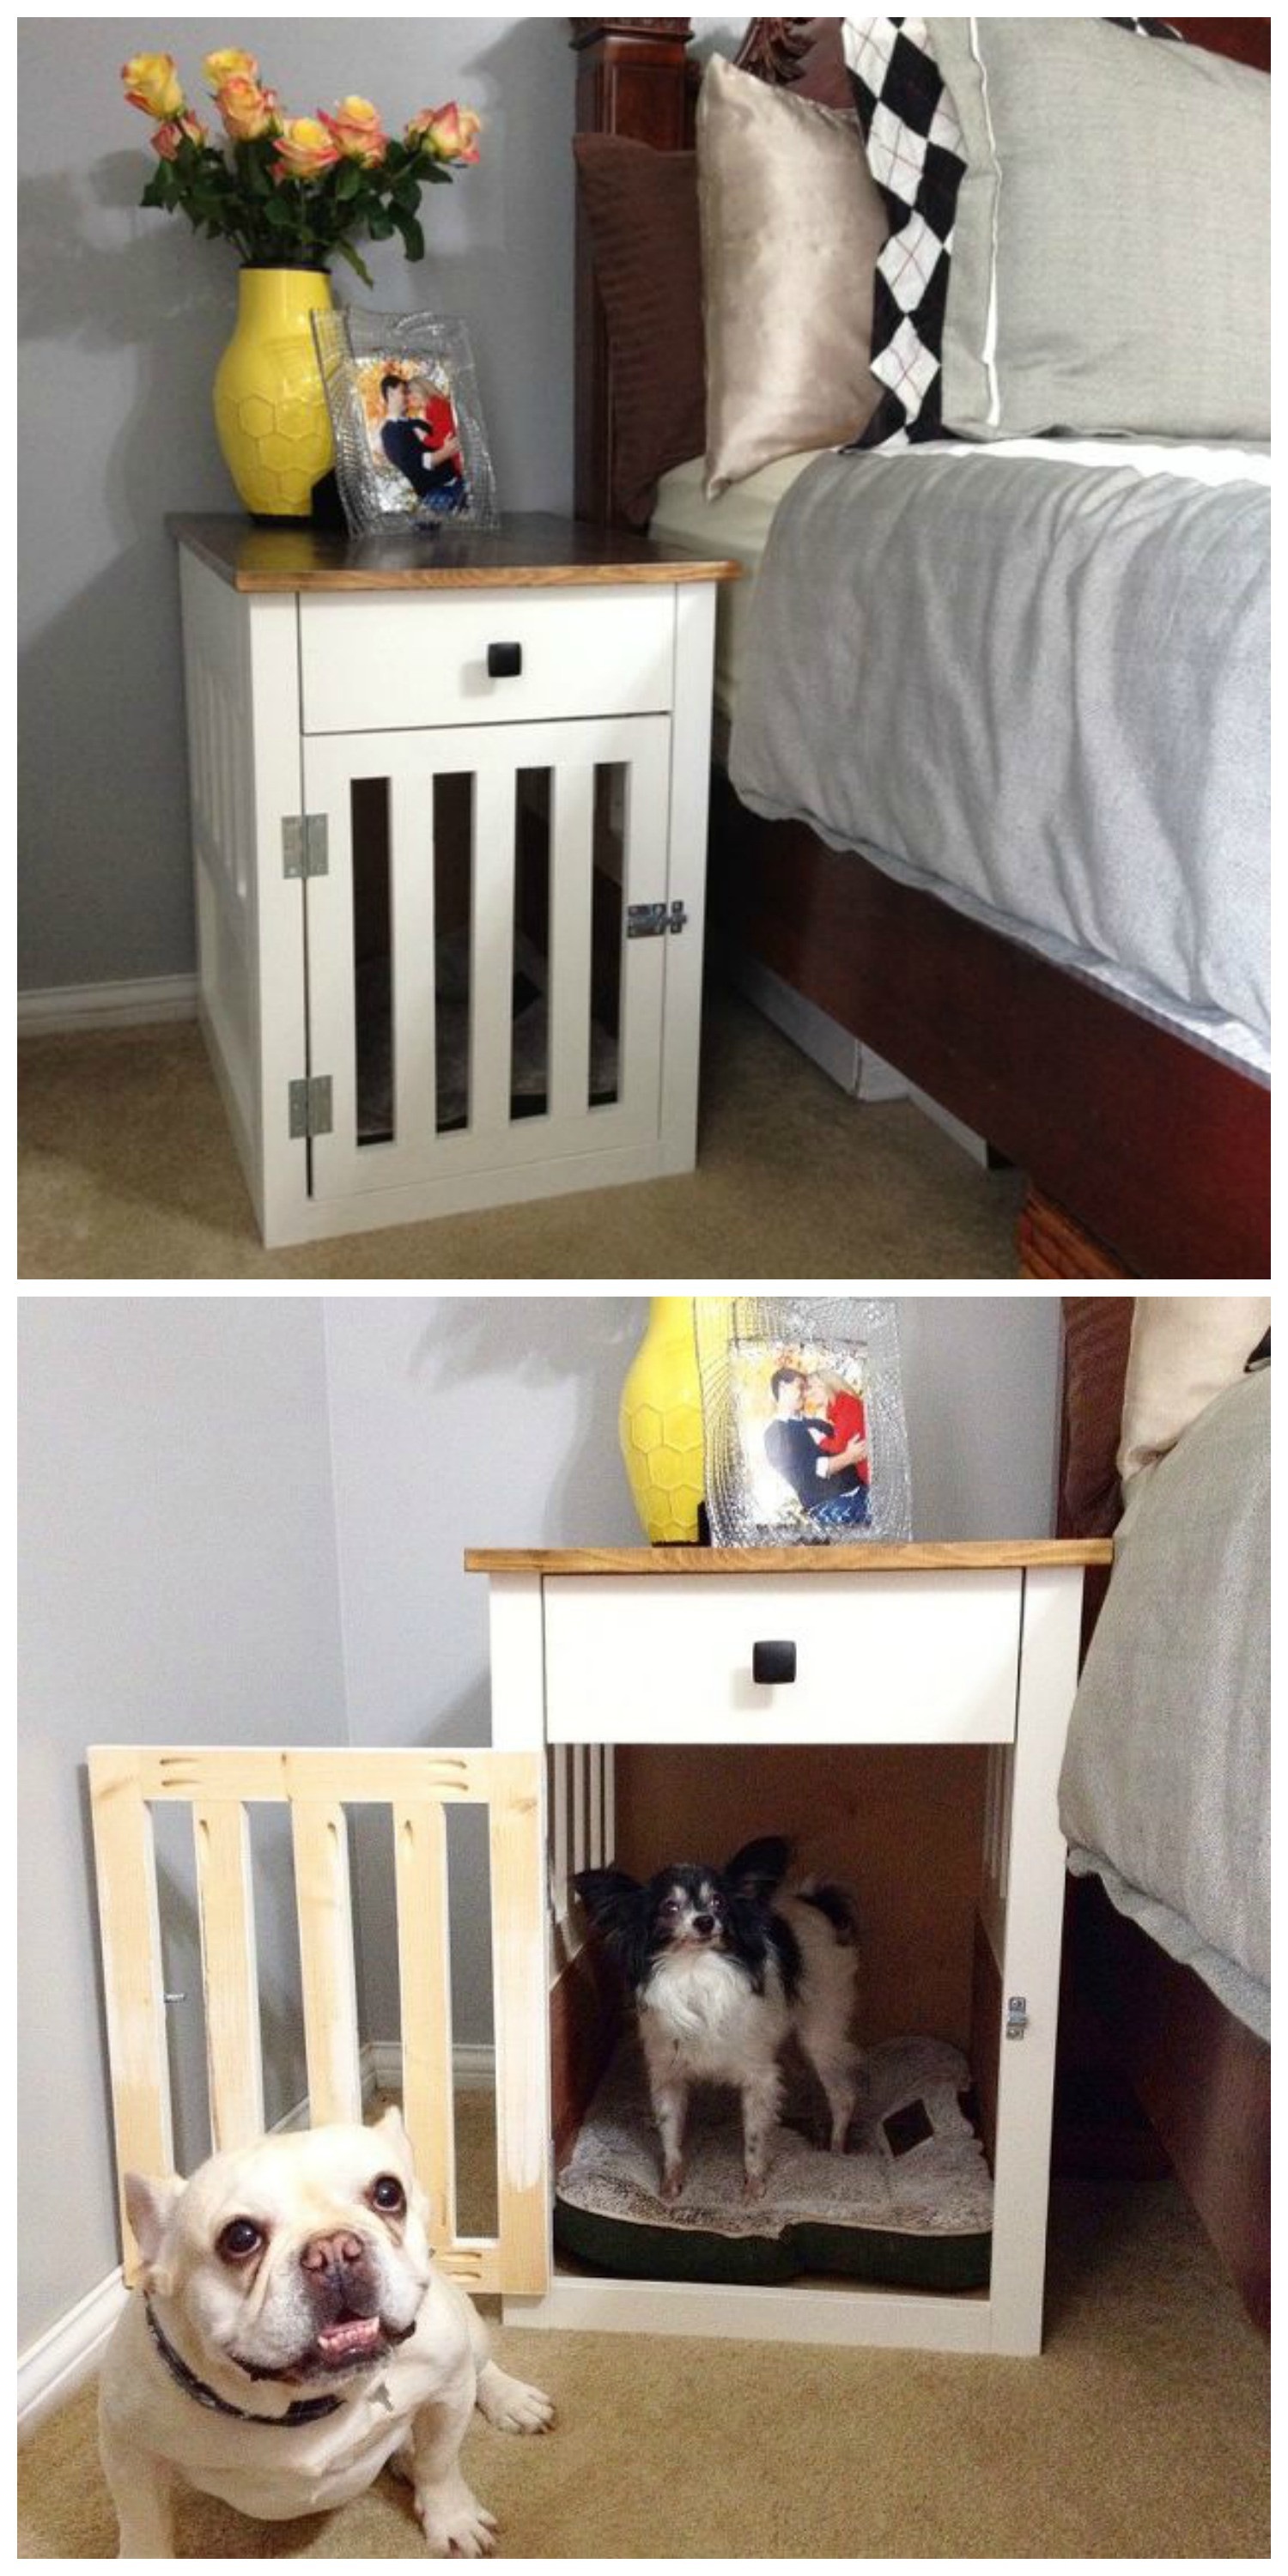 Best ideas about DIY For Dog . Save or Pin 14 Adorable DIY Dog Bed Cheap Pet Beds Now.